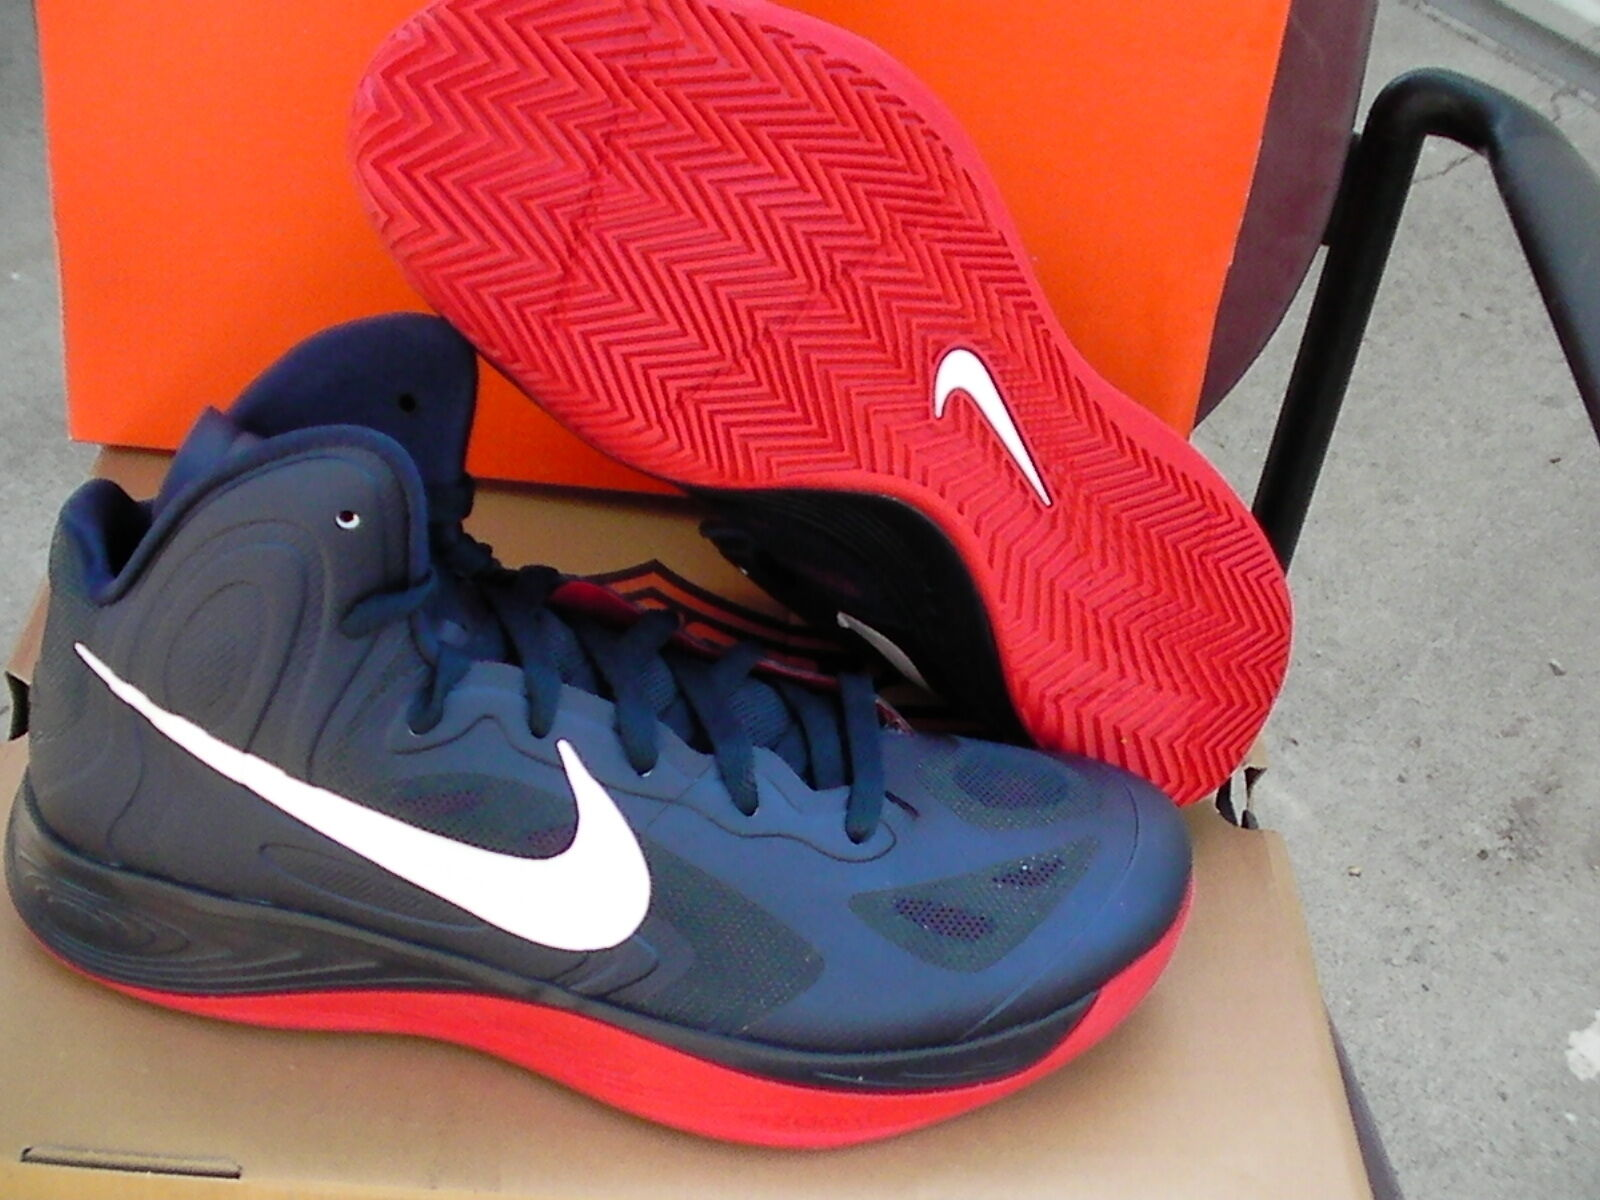 Nike hyperfuse light basketball  chaussures  Taille 9.5 us new obsidian color